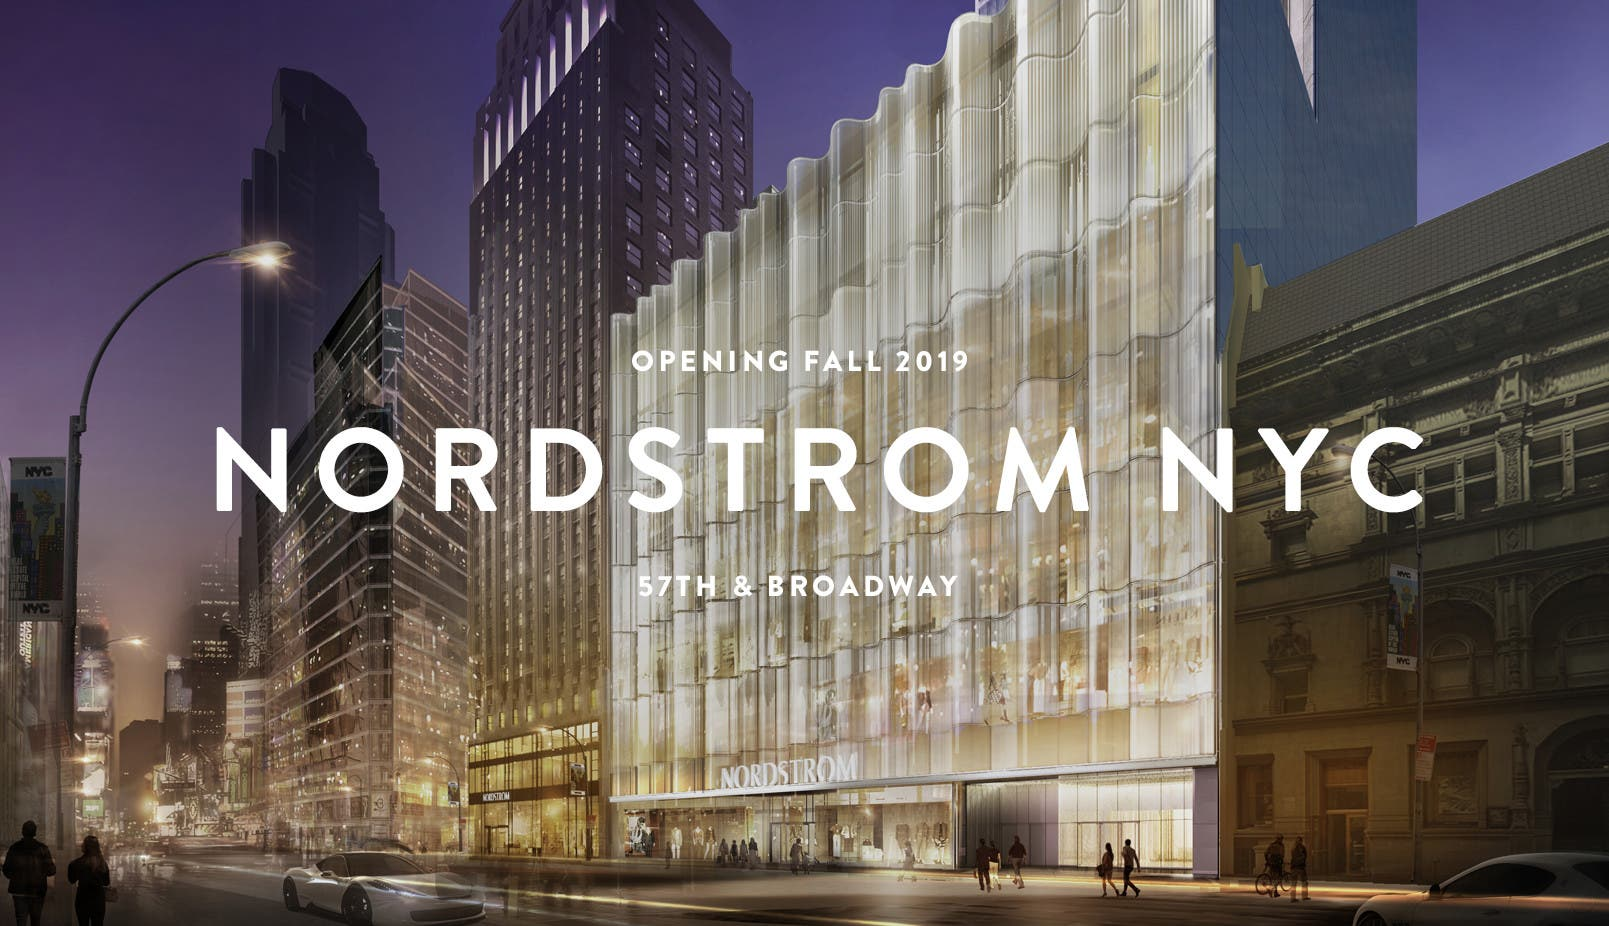 414f3cb1e Nordstrom NYC: opening Fall 2019.